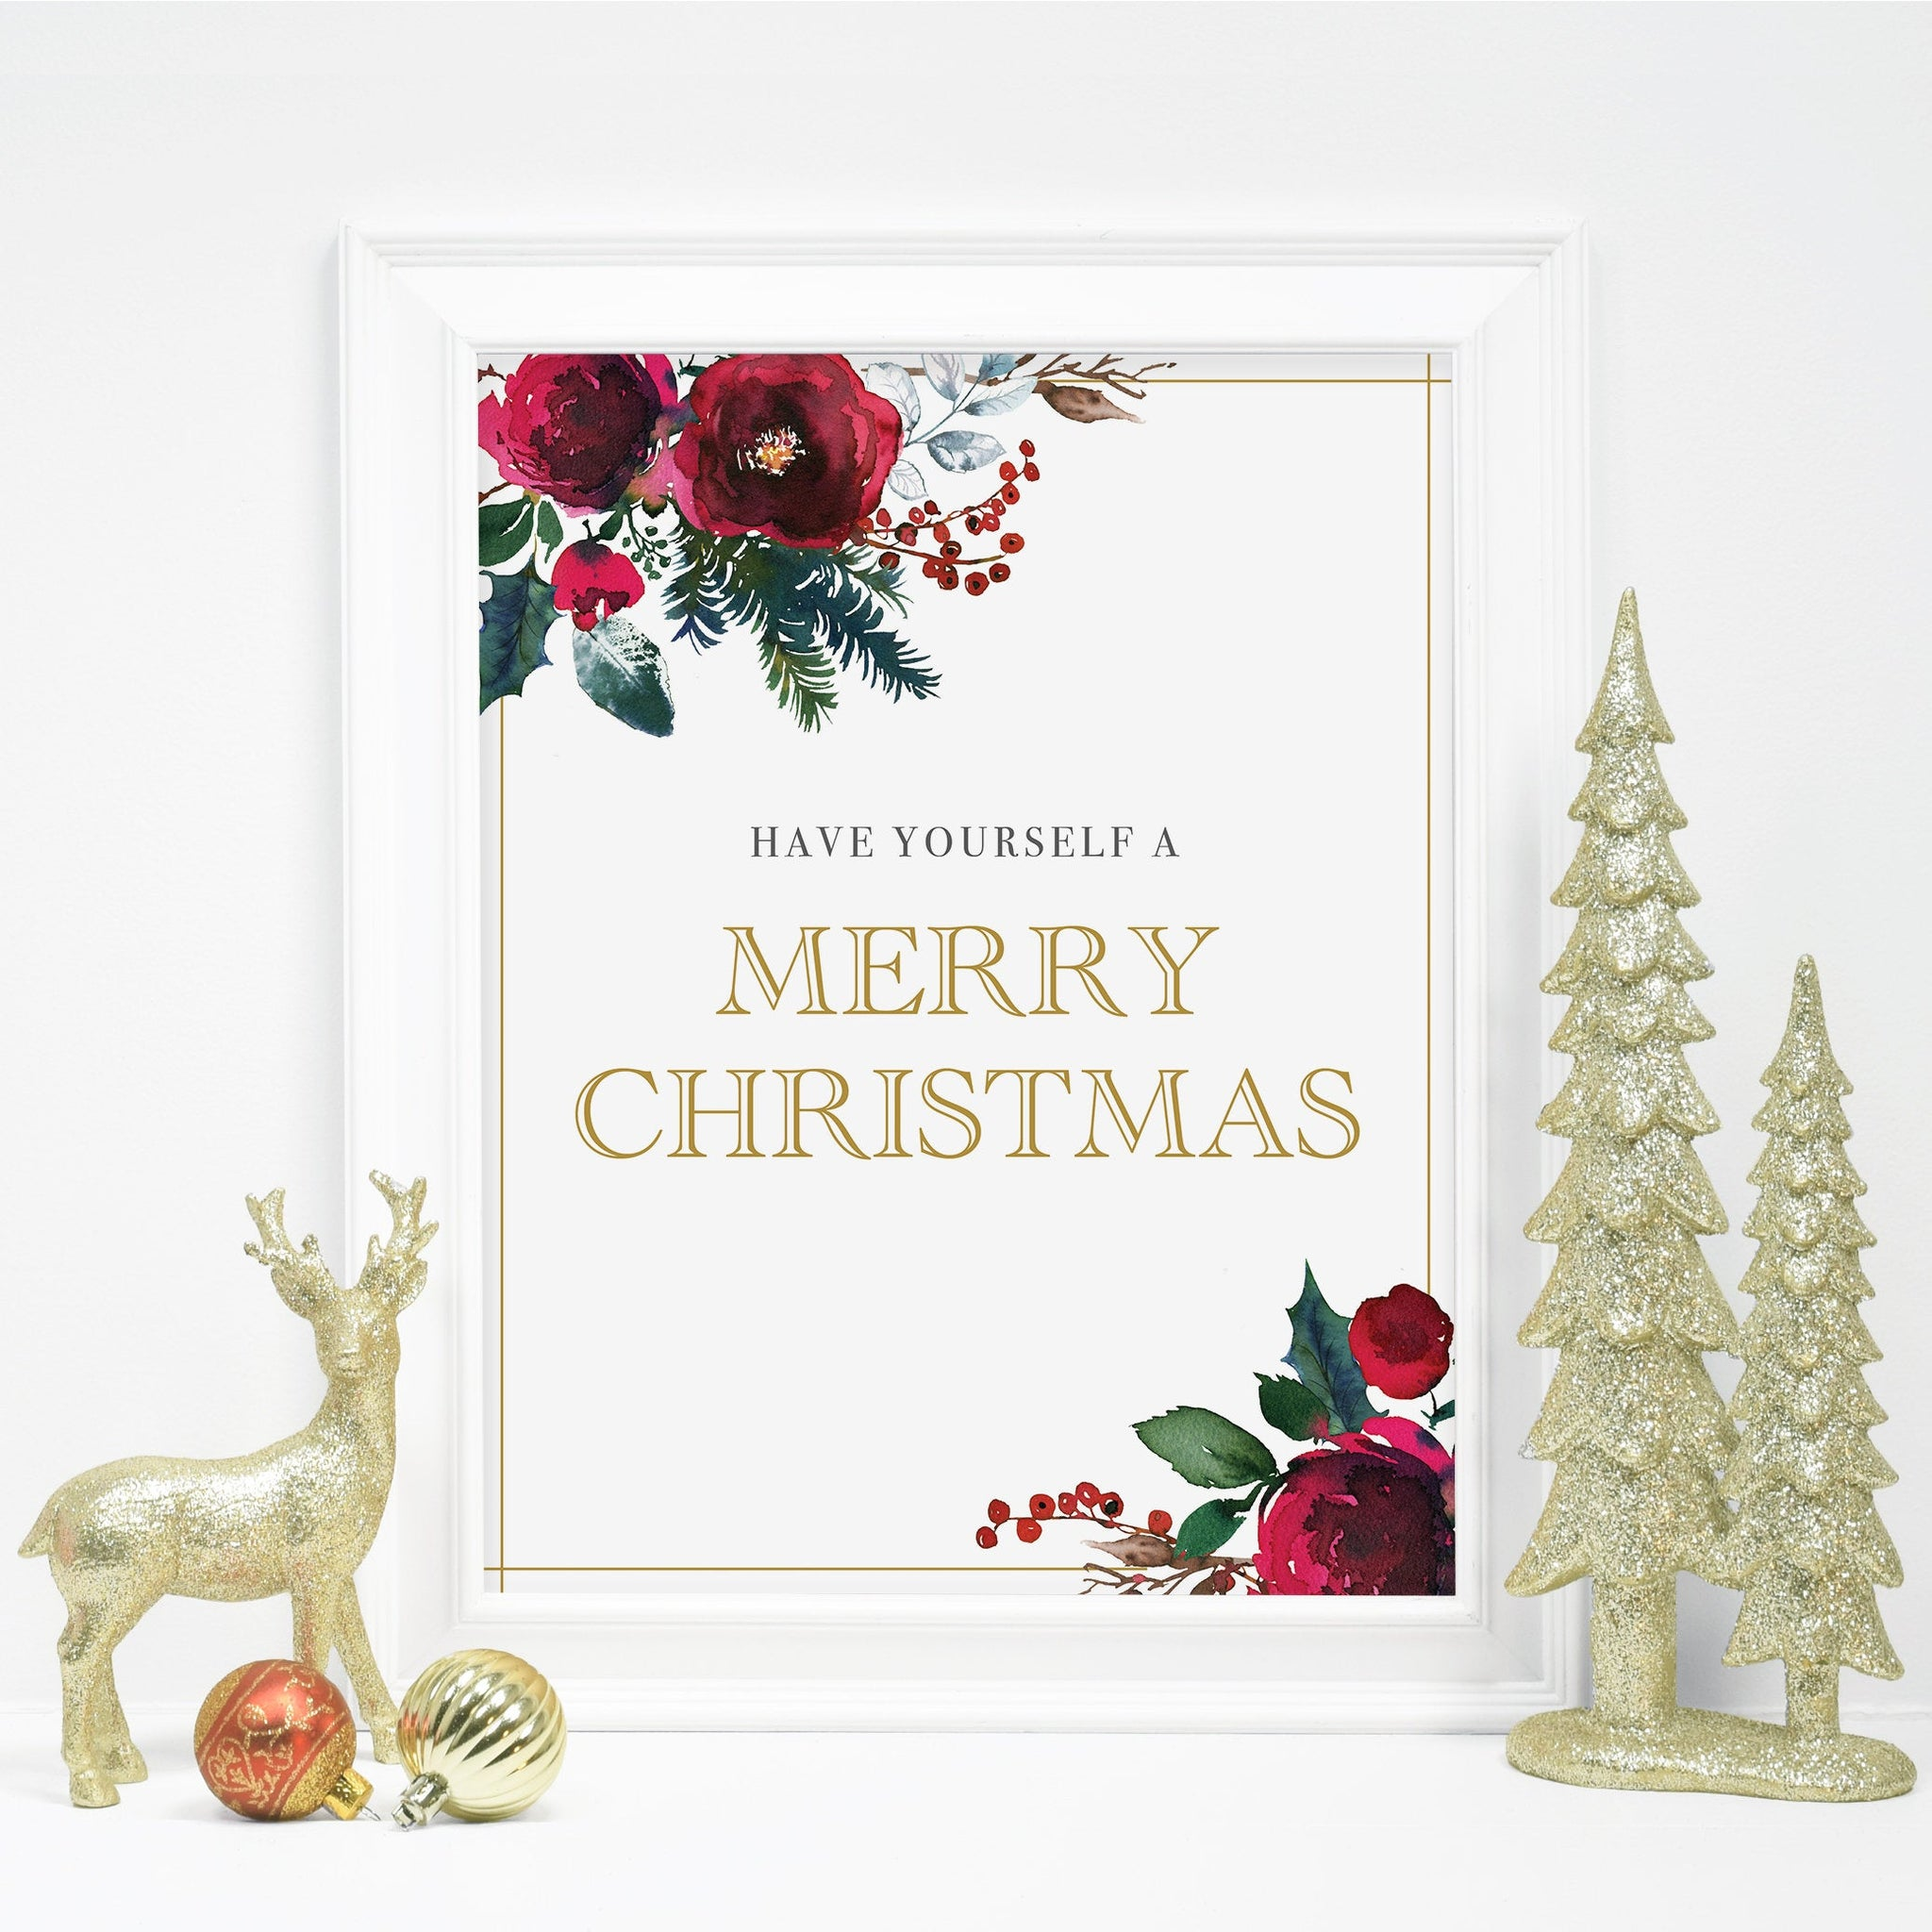 Merry Christmas Sign Printable, Holiday Decor, Christmas Party Printable Decorations, Holiday Party Decor, INSTANT DOWNLOAD - CG100